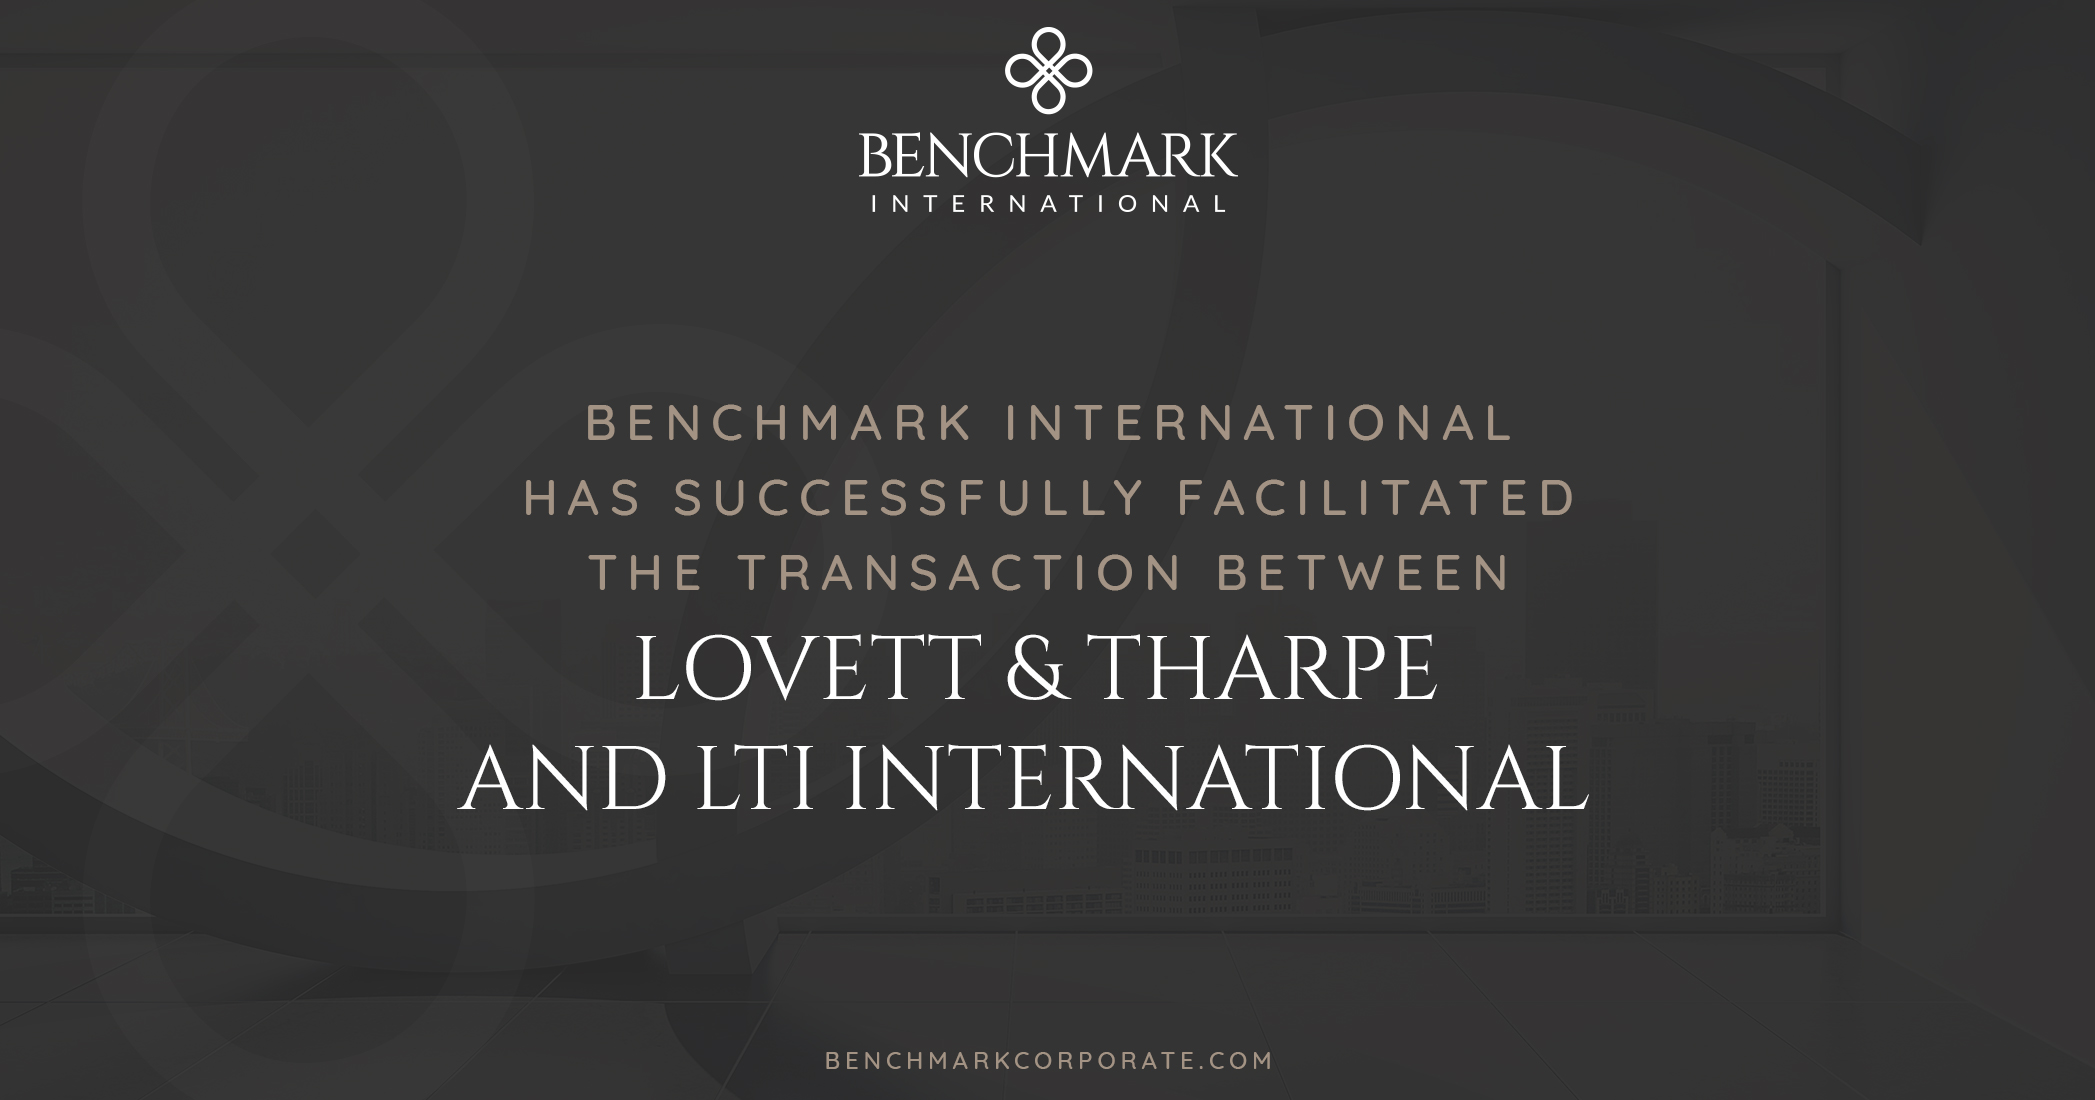 Benchmark International Has Facilitated The Transaction Of Lovett & Tharpe To LTI International